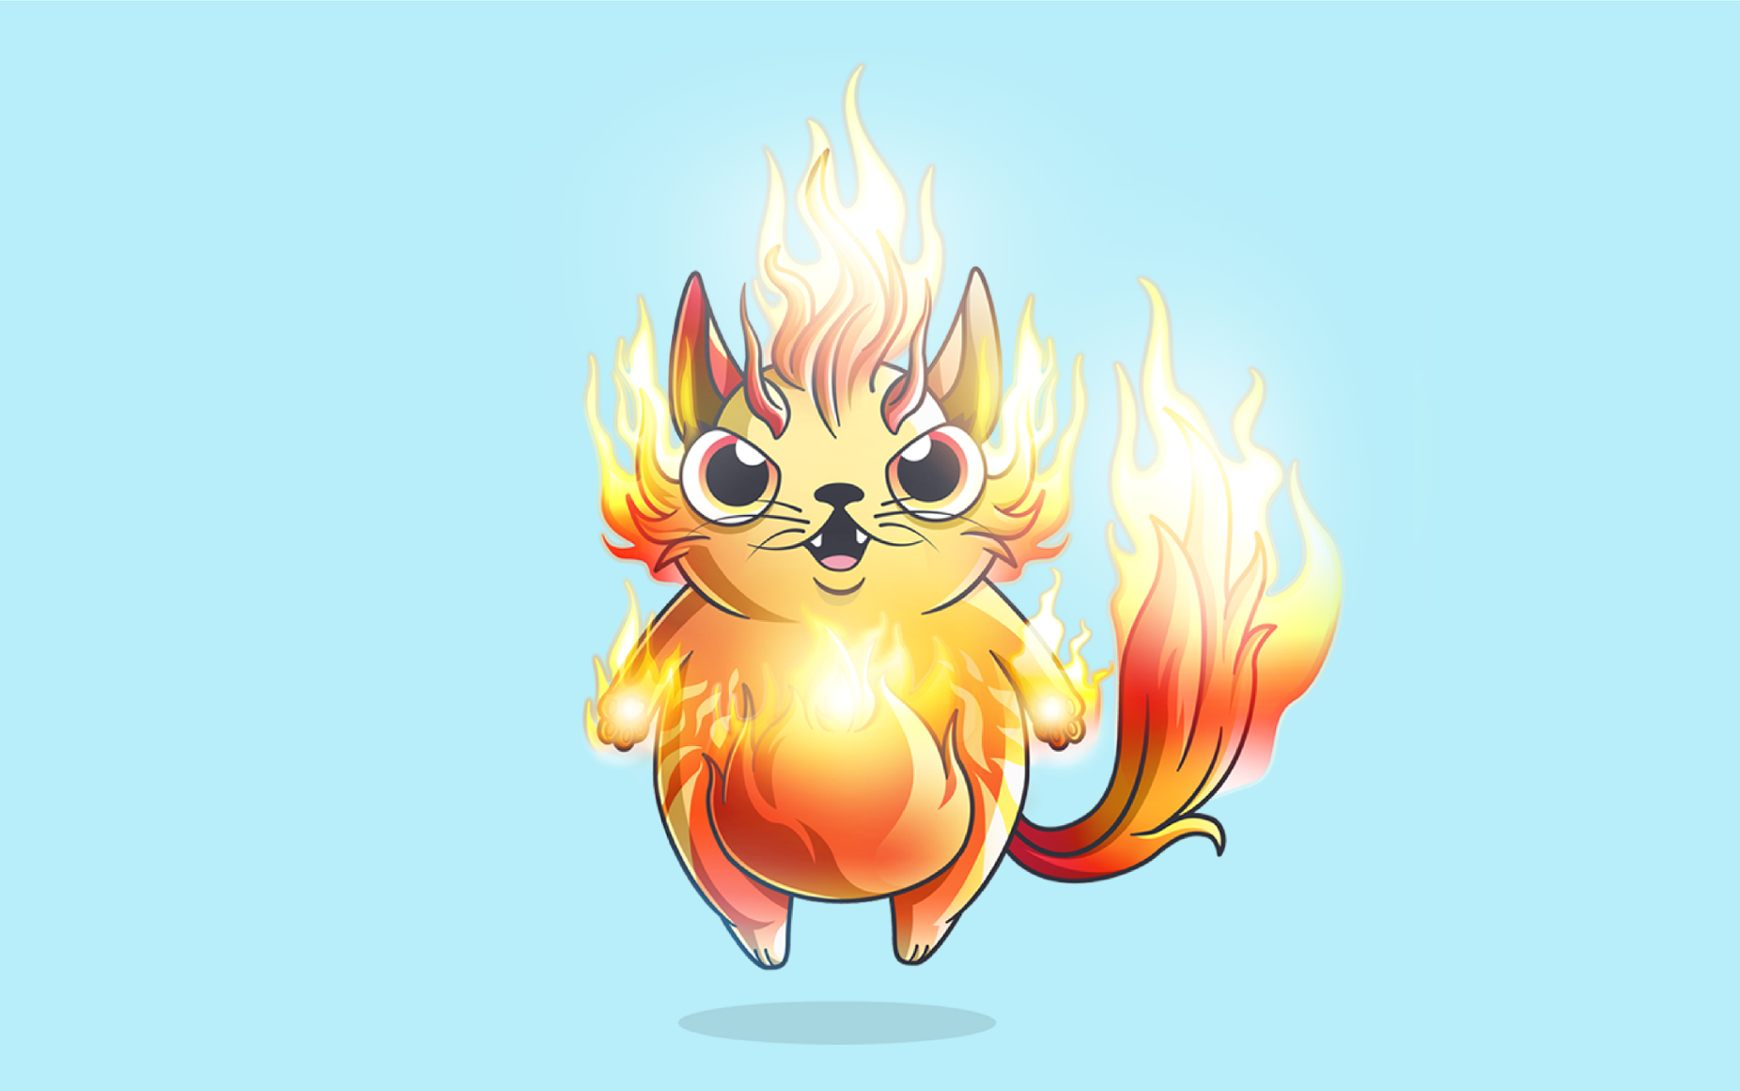 A fancy cat from CryptoKitties